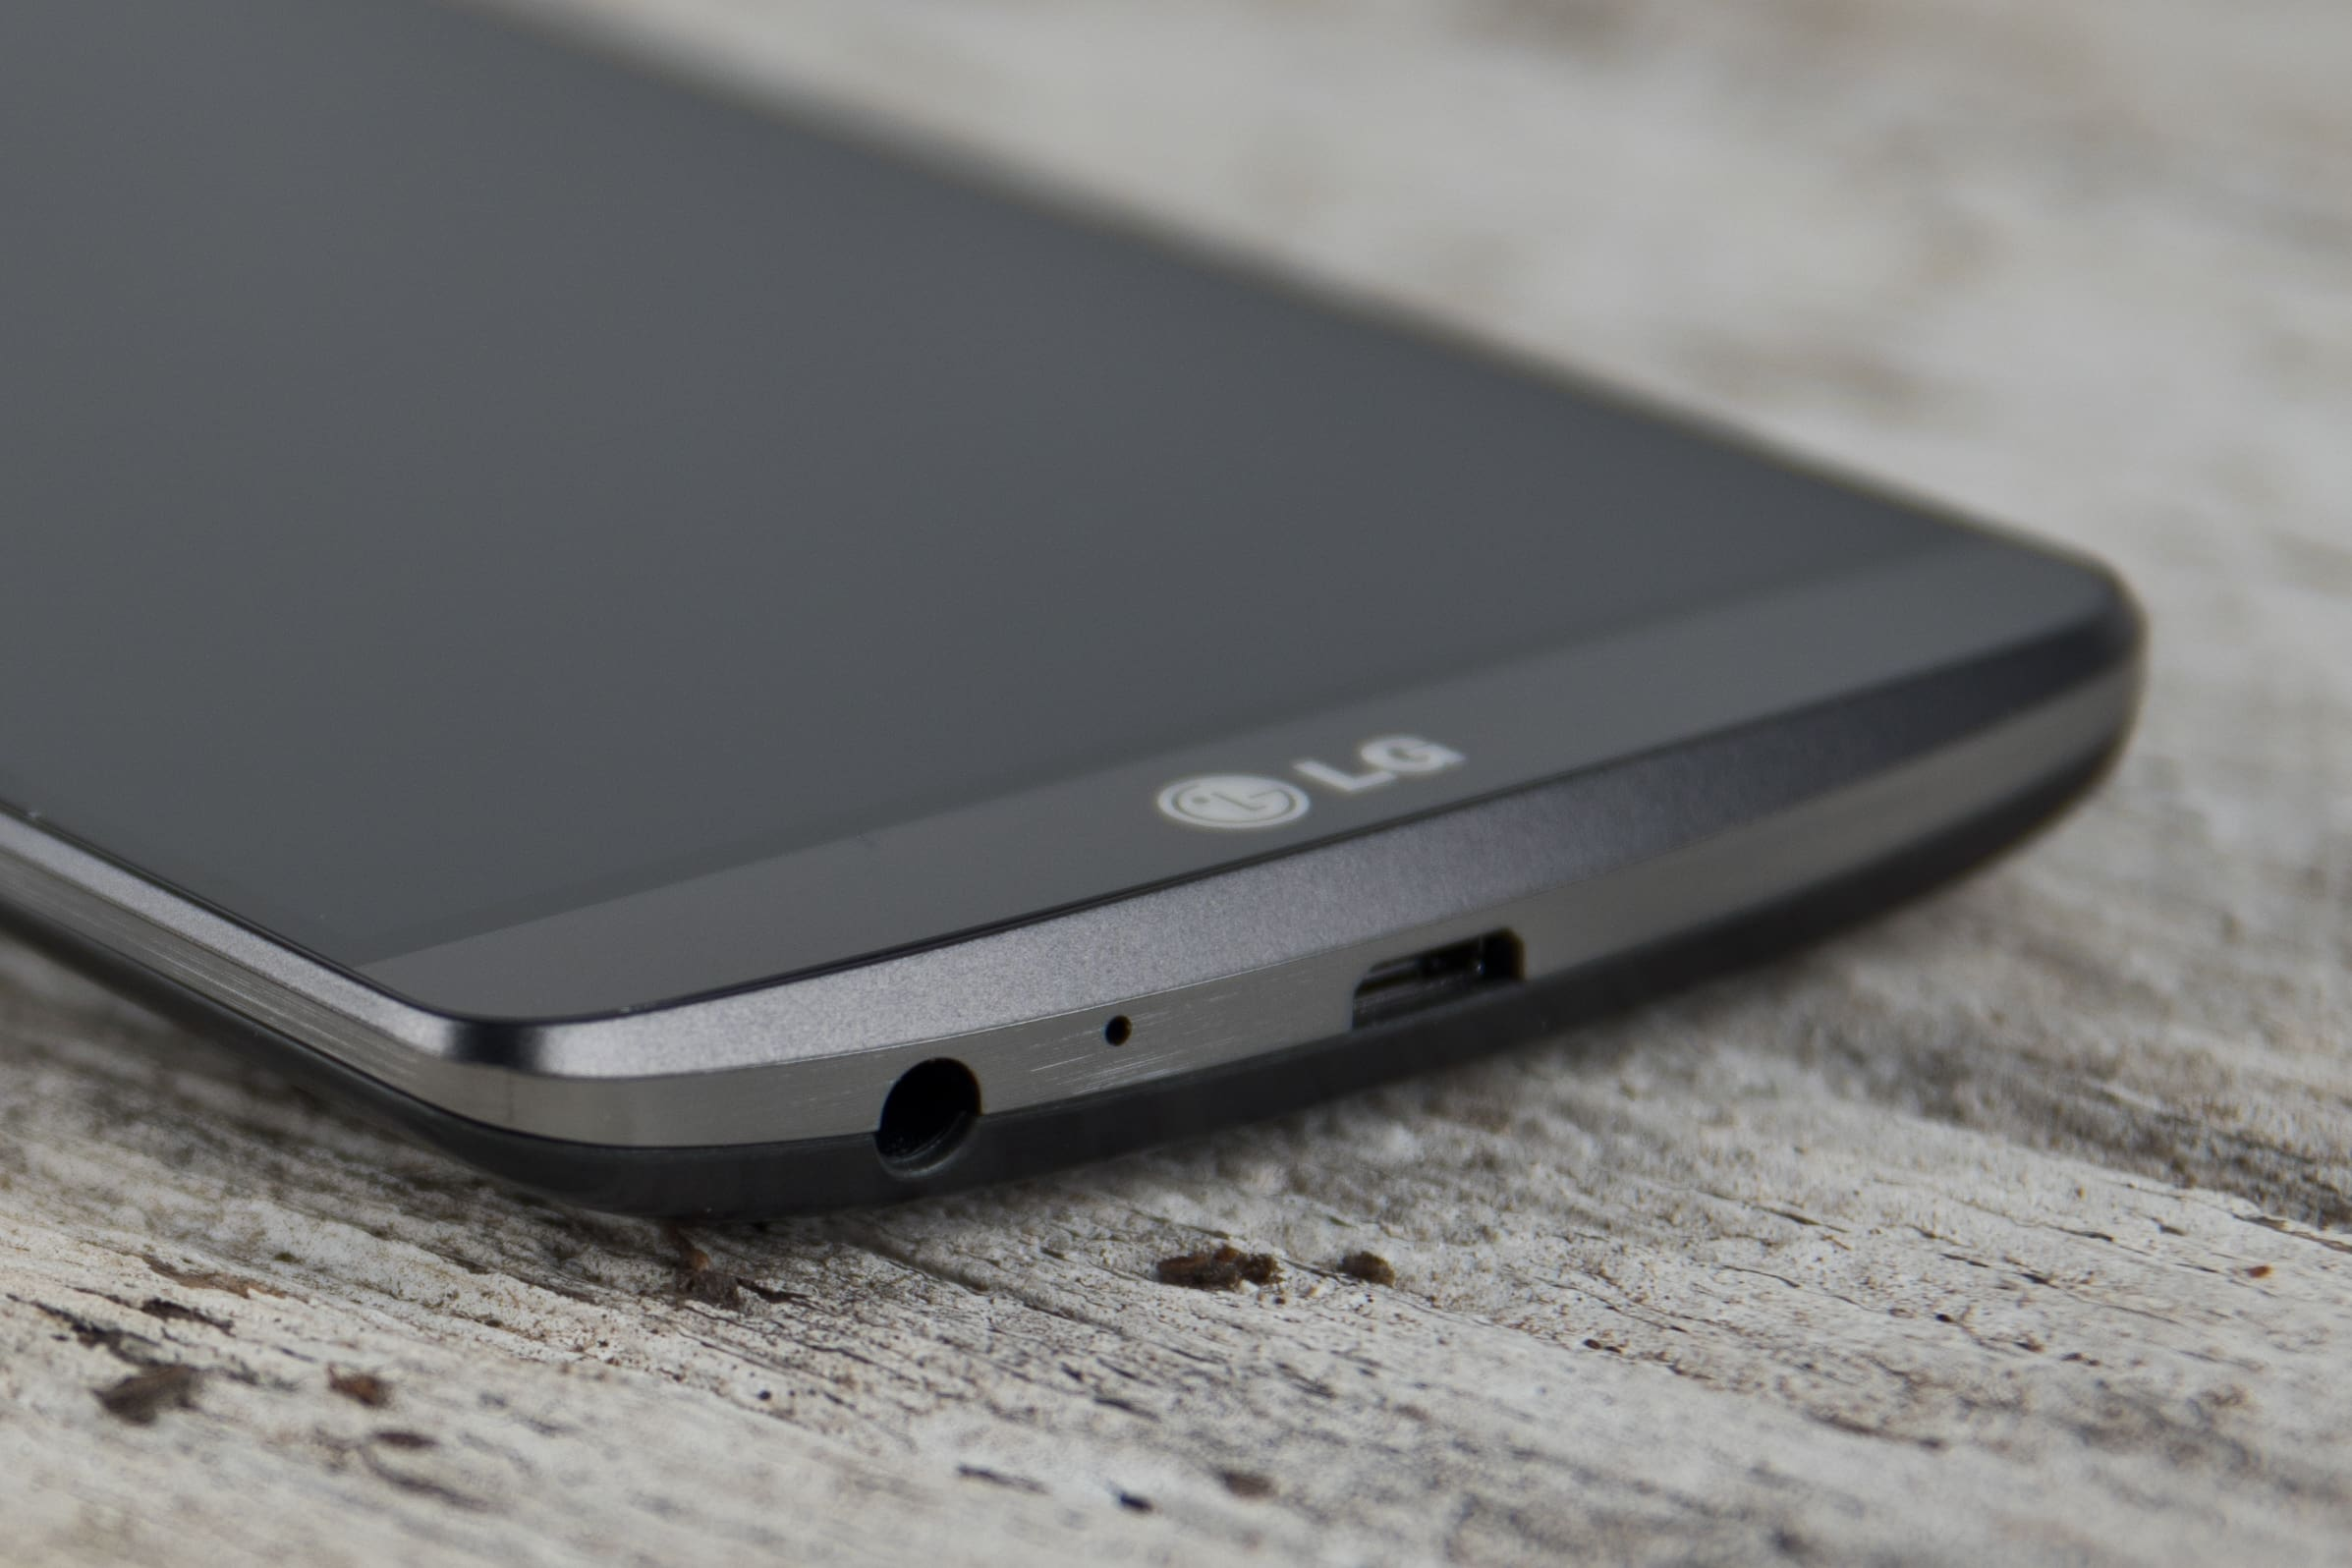 A close-up photo of the LG G3's headphone jack.